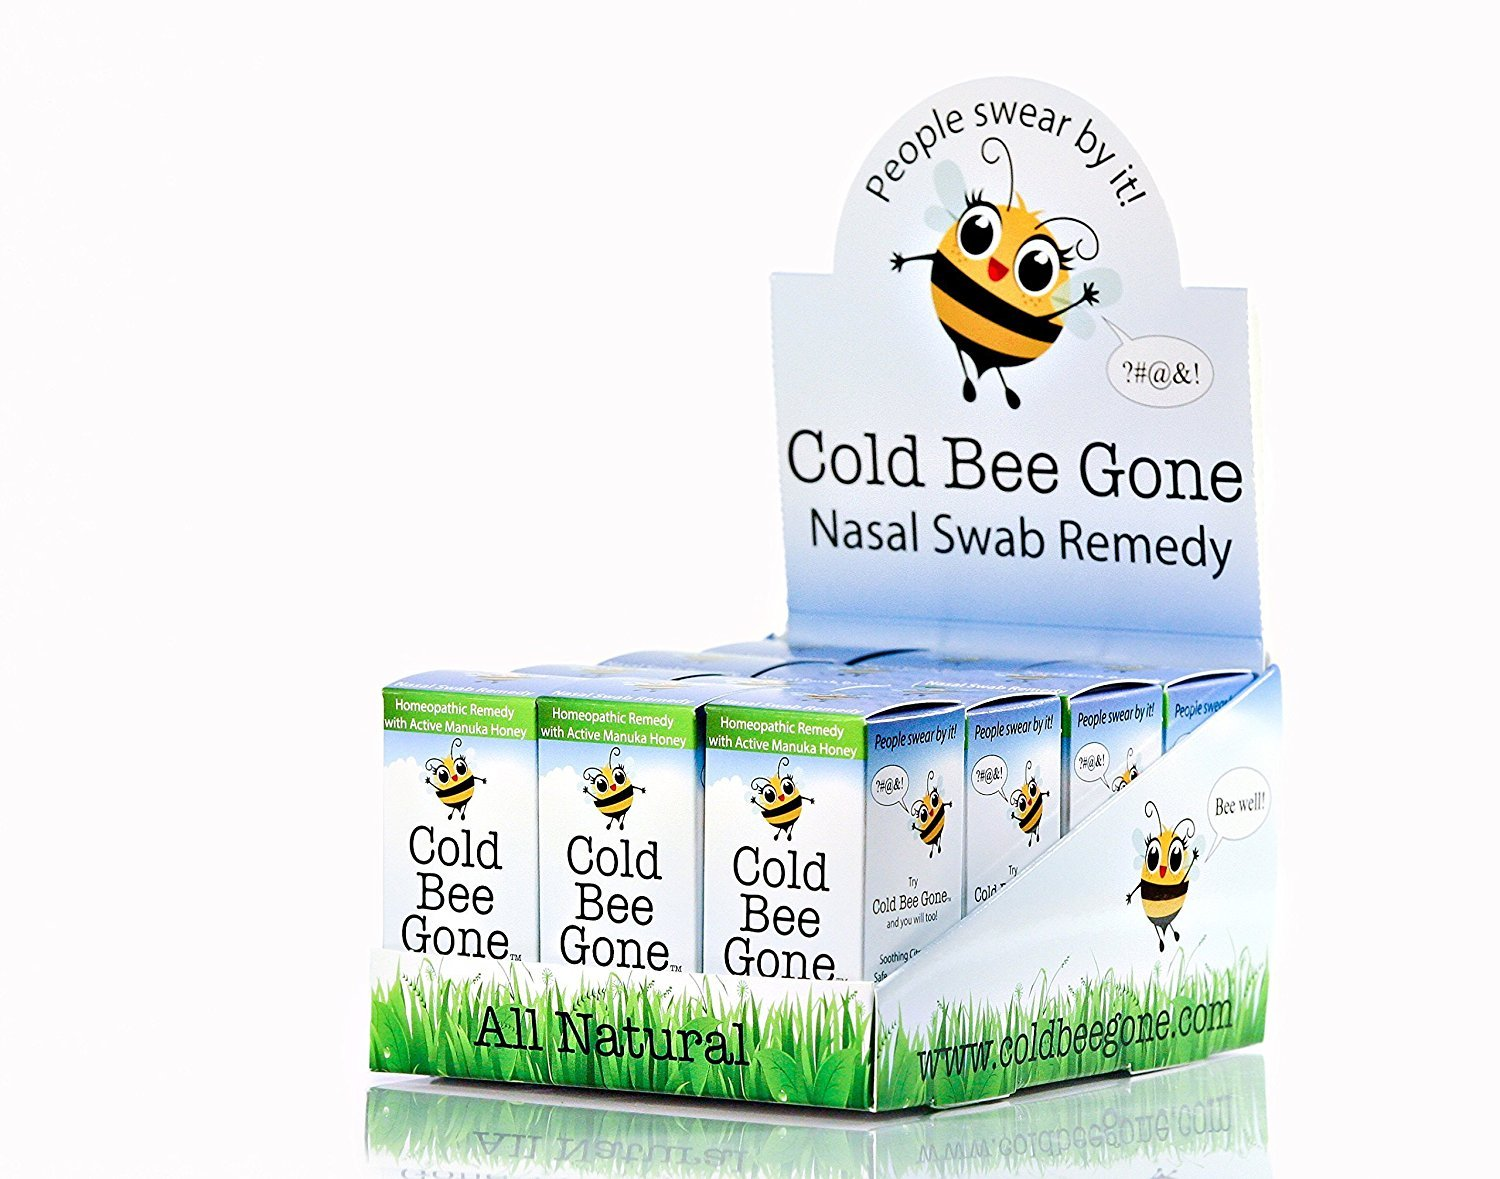 Cold Bee Gone Nasal Swab Remedy